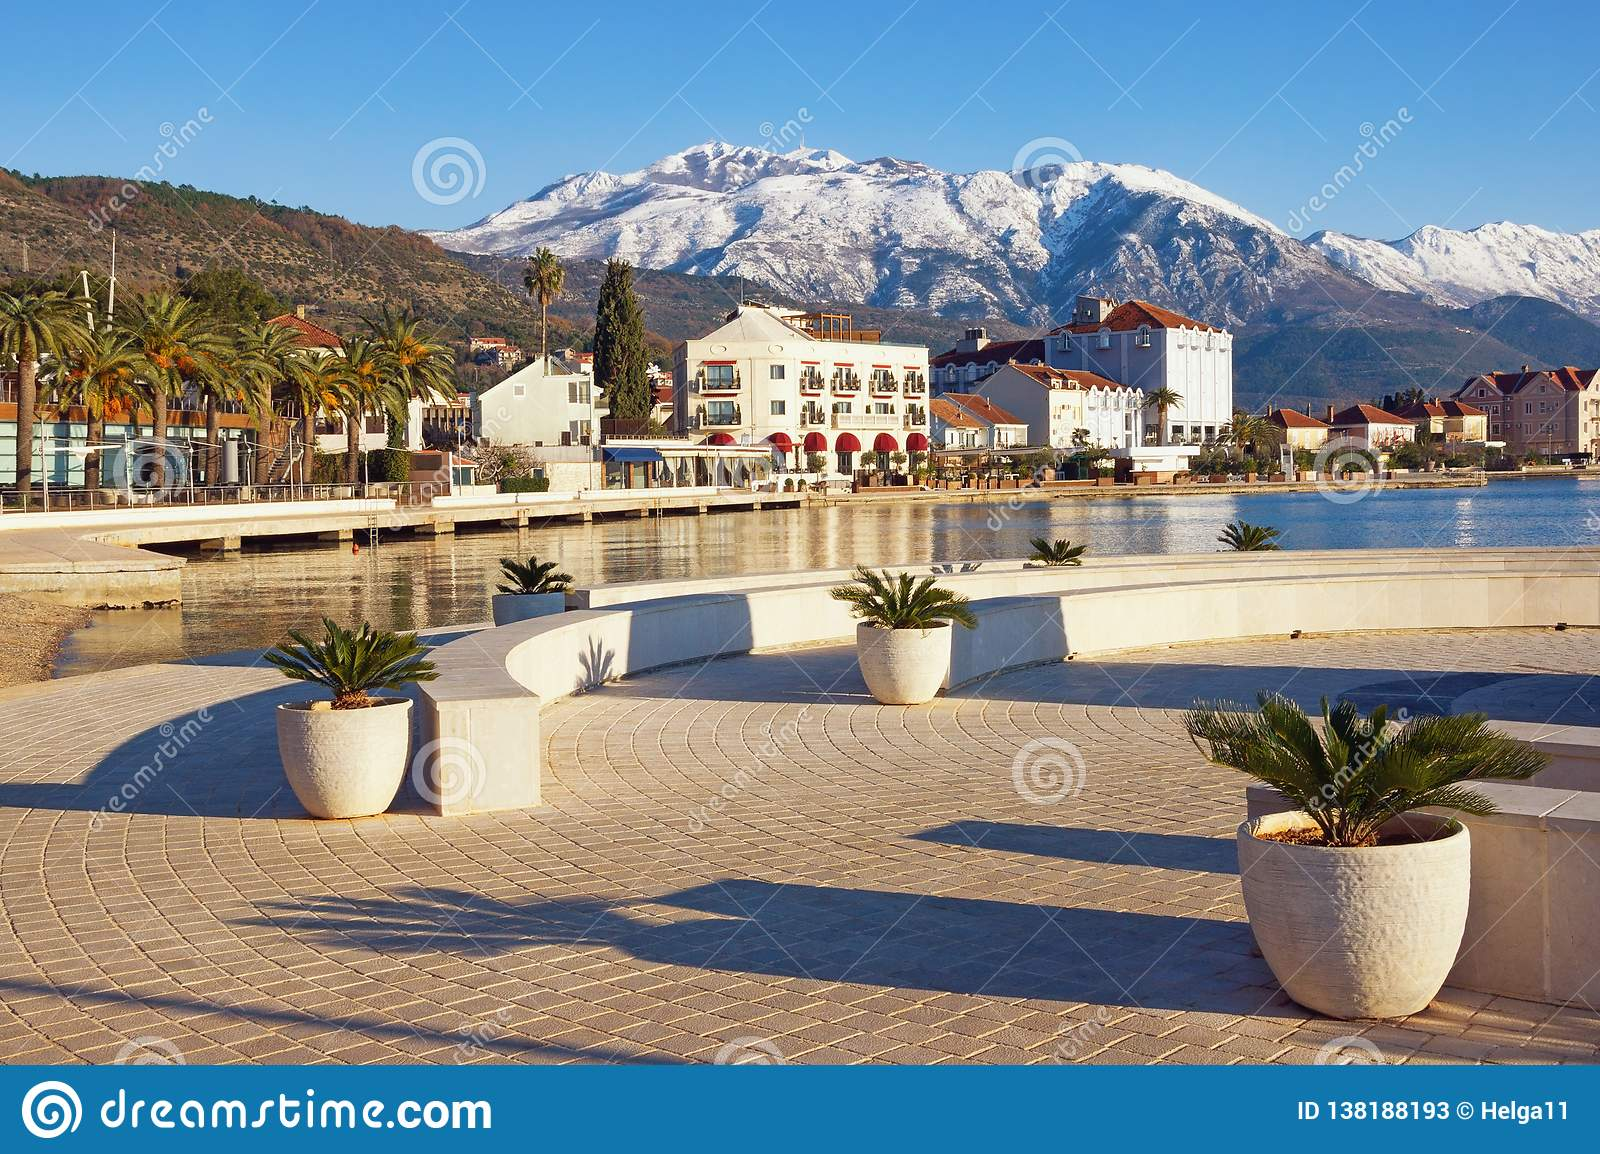 Sunny winter day. Montenegro, view of embankment of Tivat city and snowy peaks of Lovcen mountains